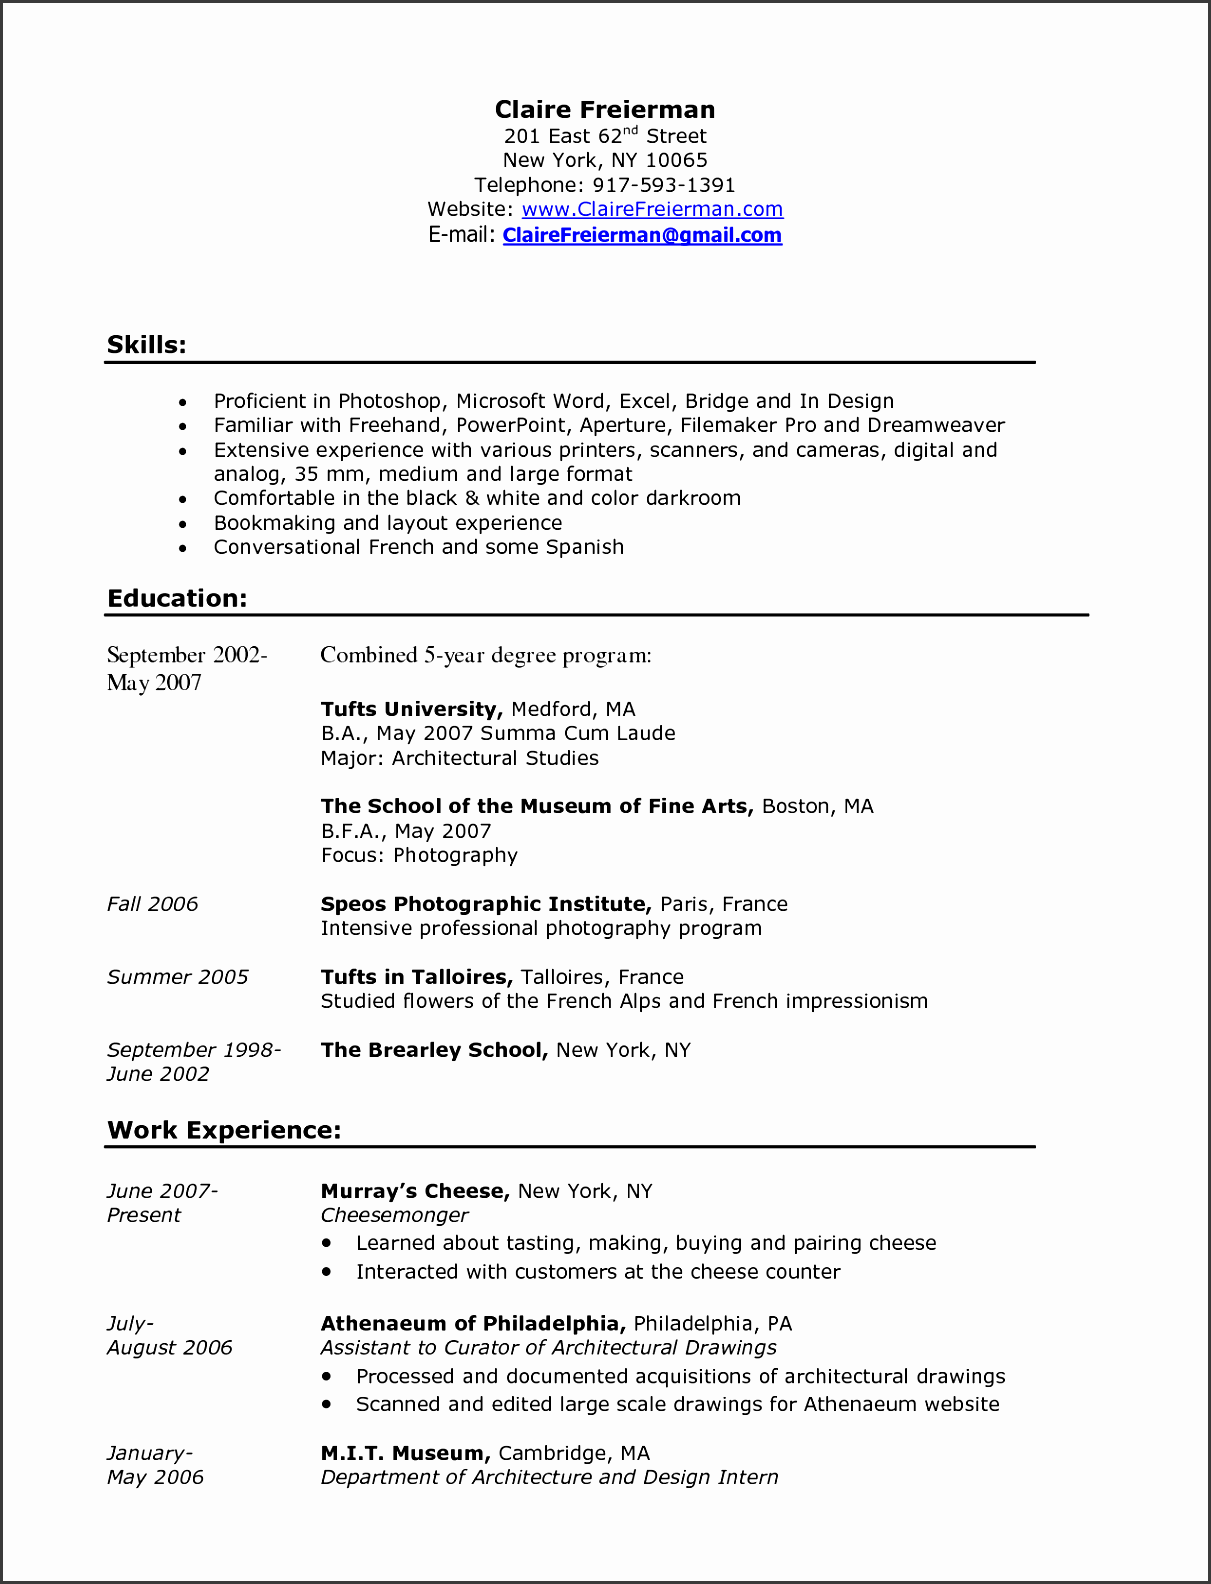 job resume barista job description resume for new barista barista resume espresso coffee guide barista